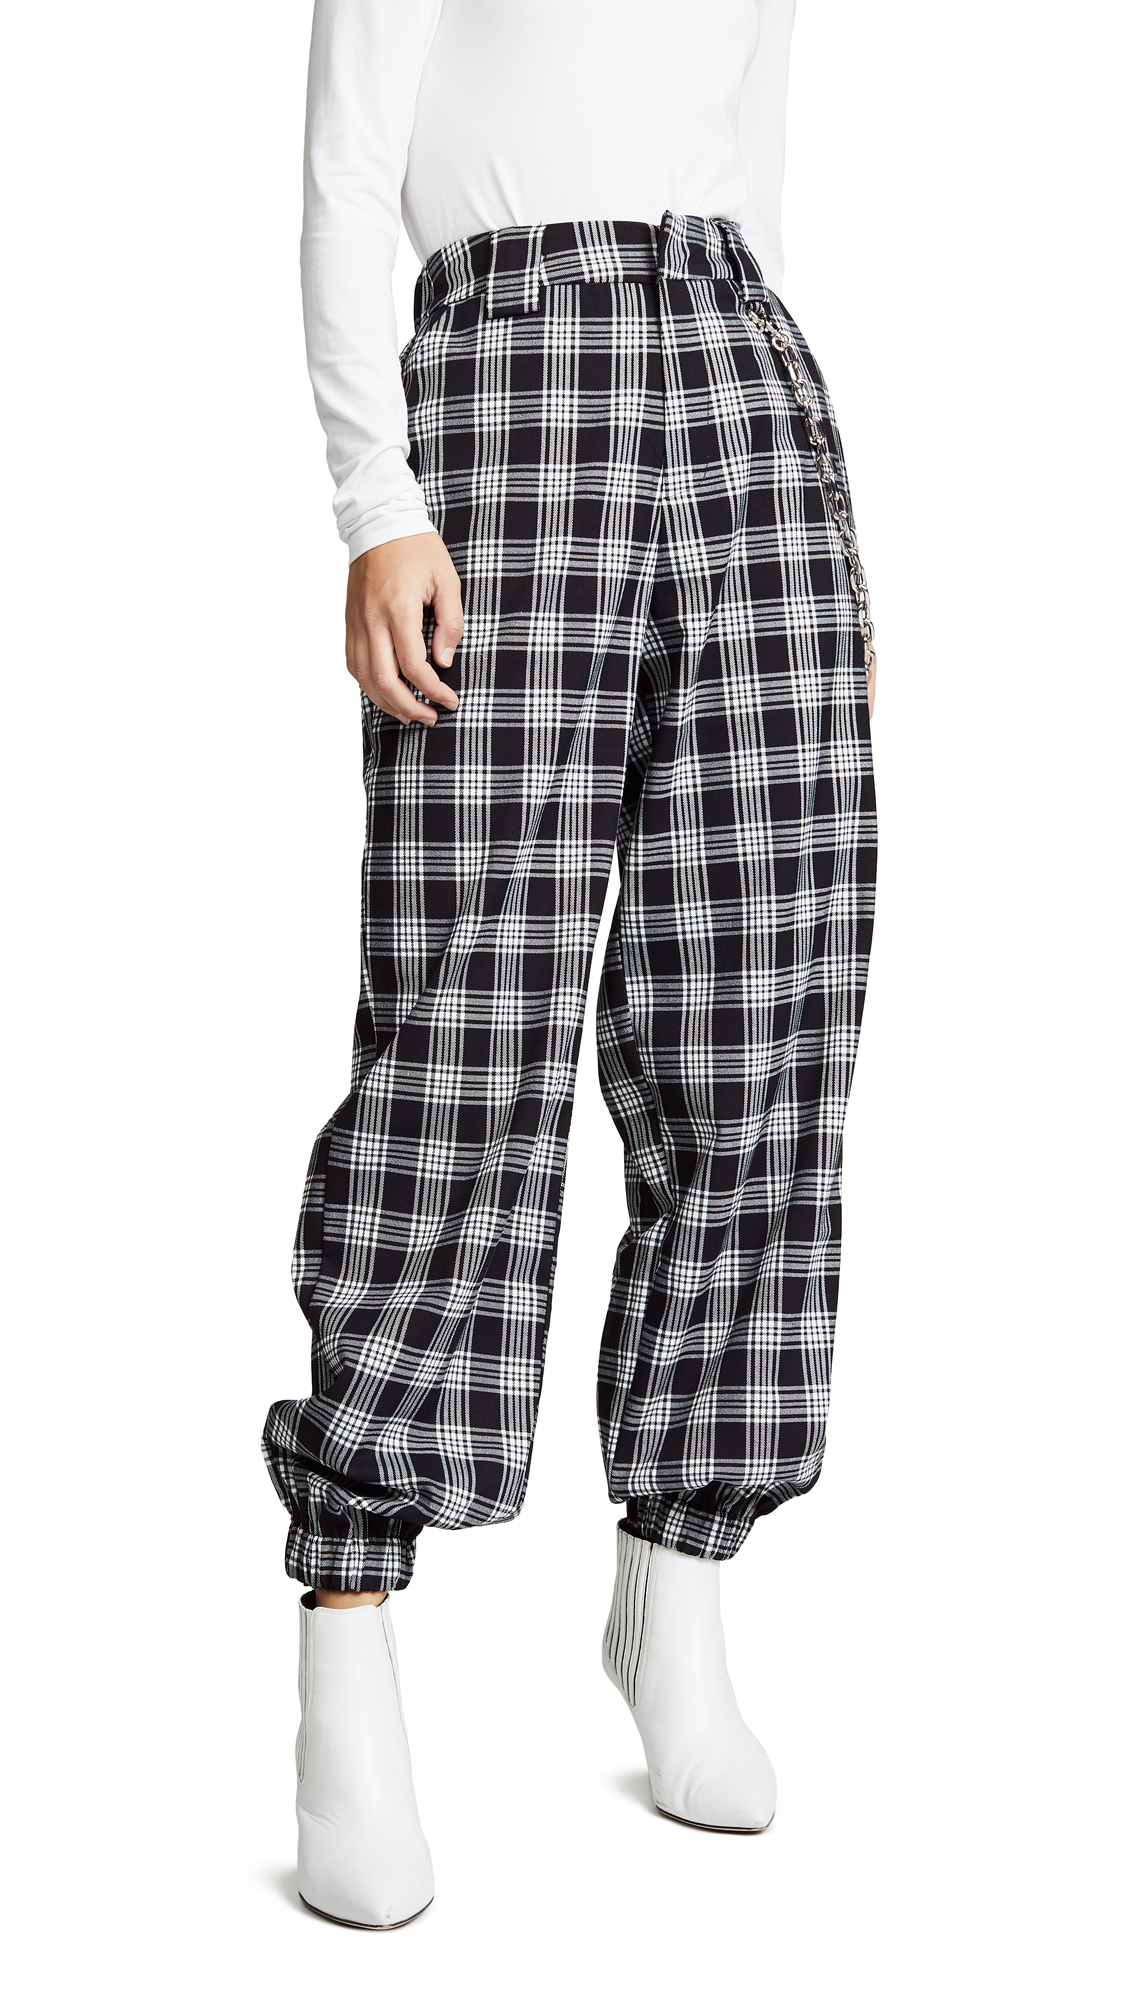 I.AM. GIA Cobain Pants In Check